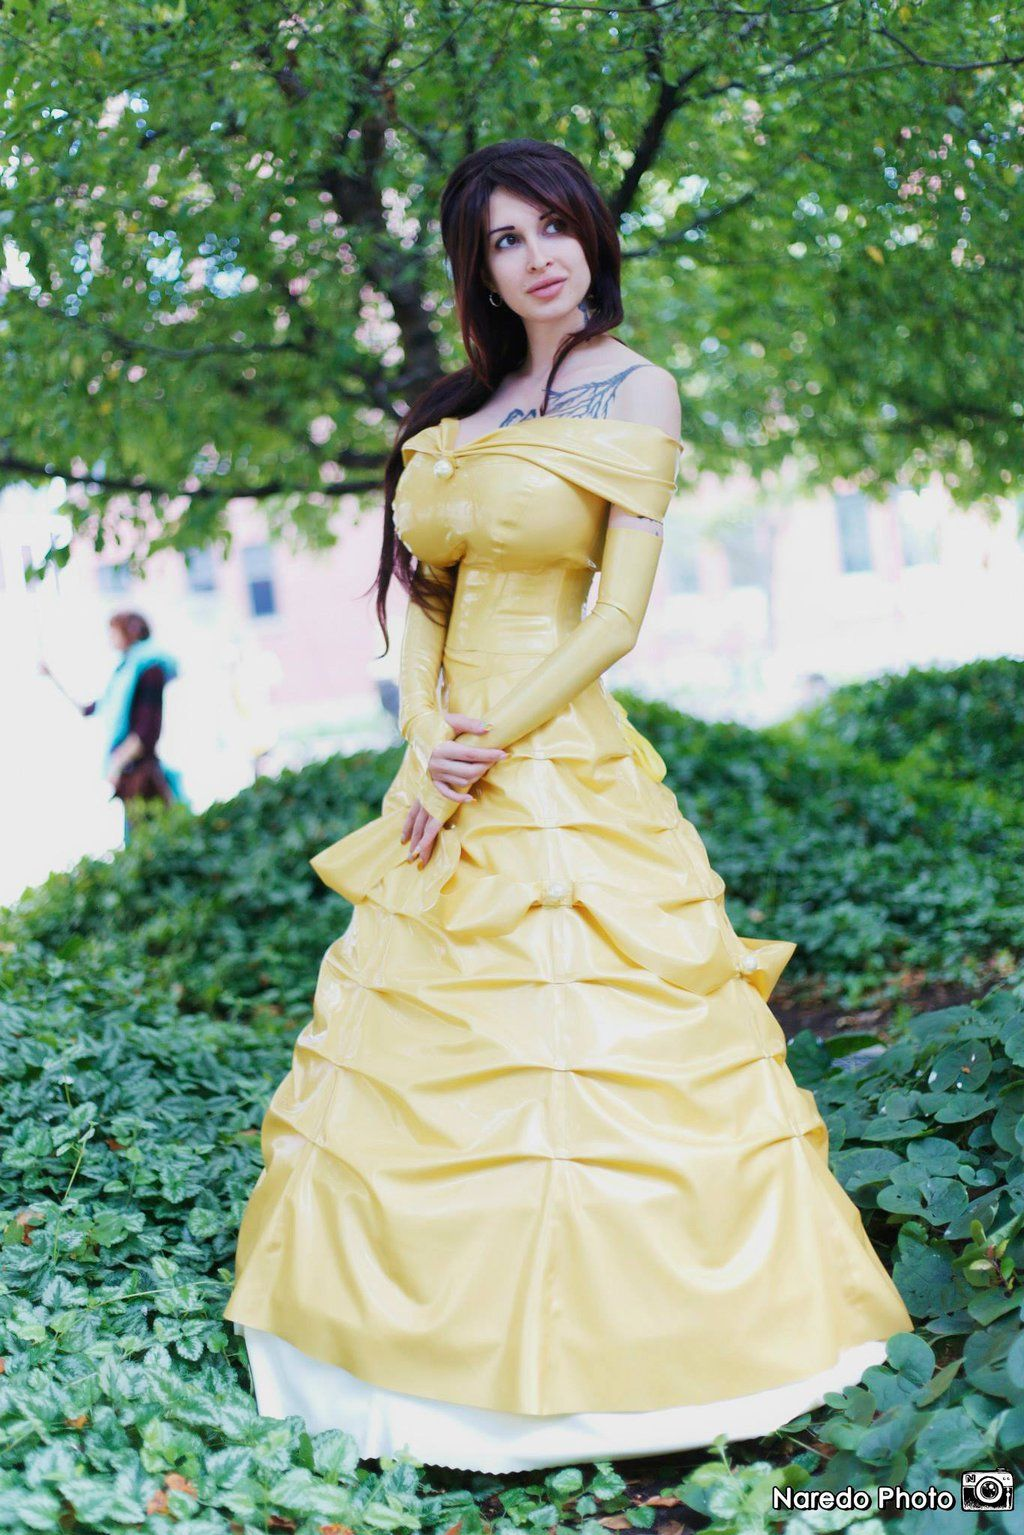 ariane saint amour cosplay Belle cosplay by Ariane Saint Amour.